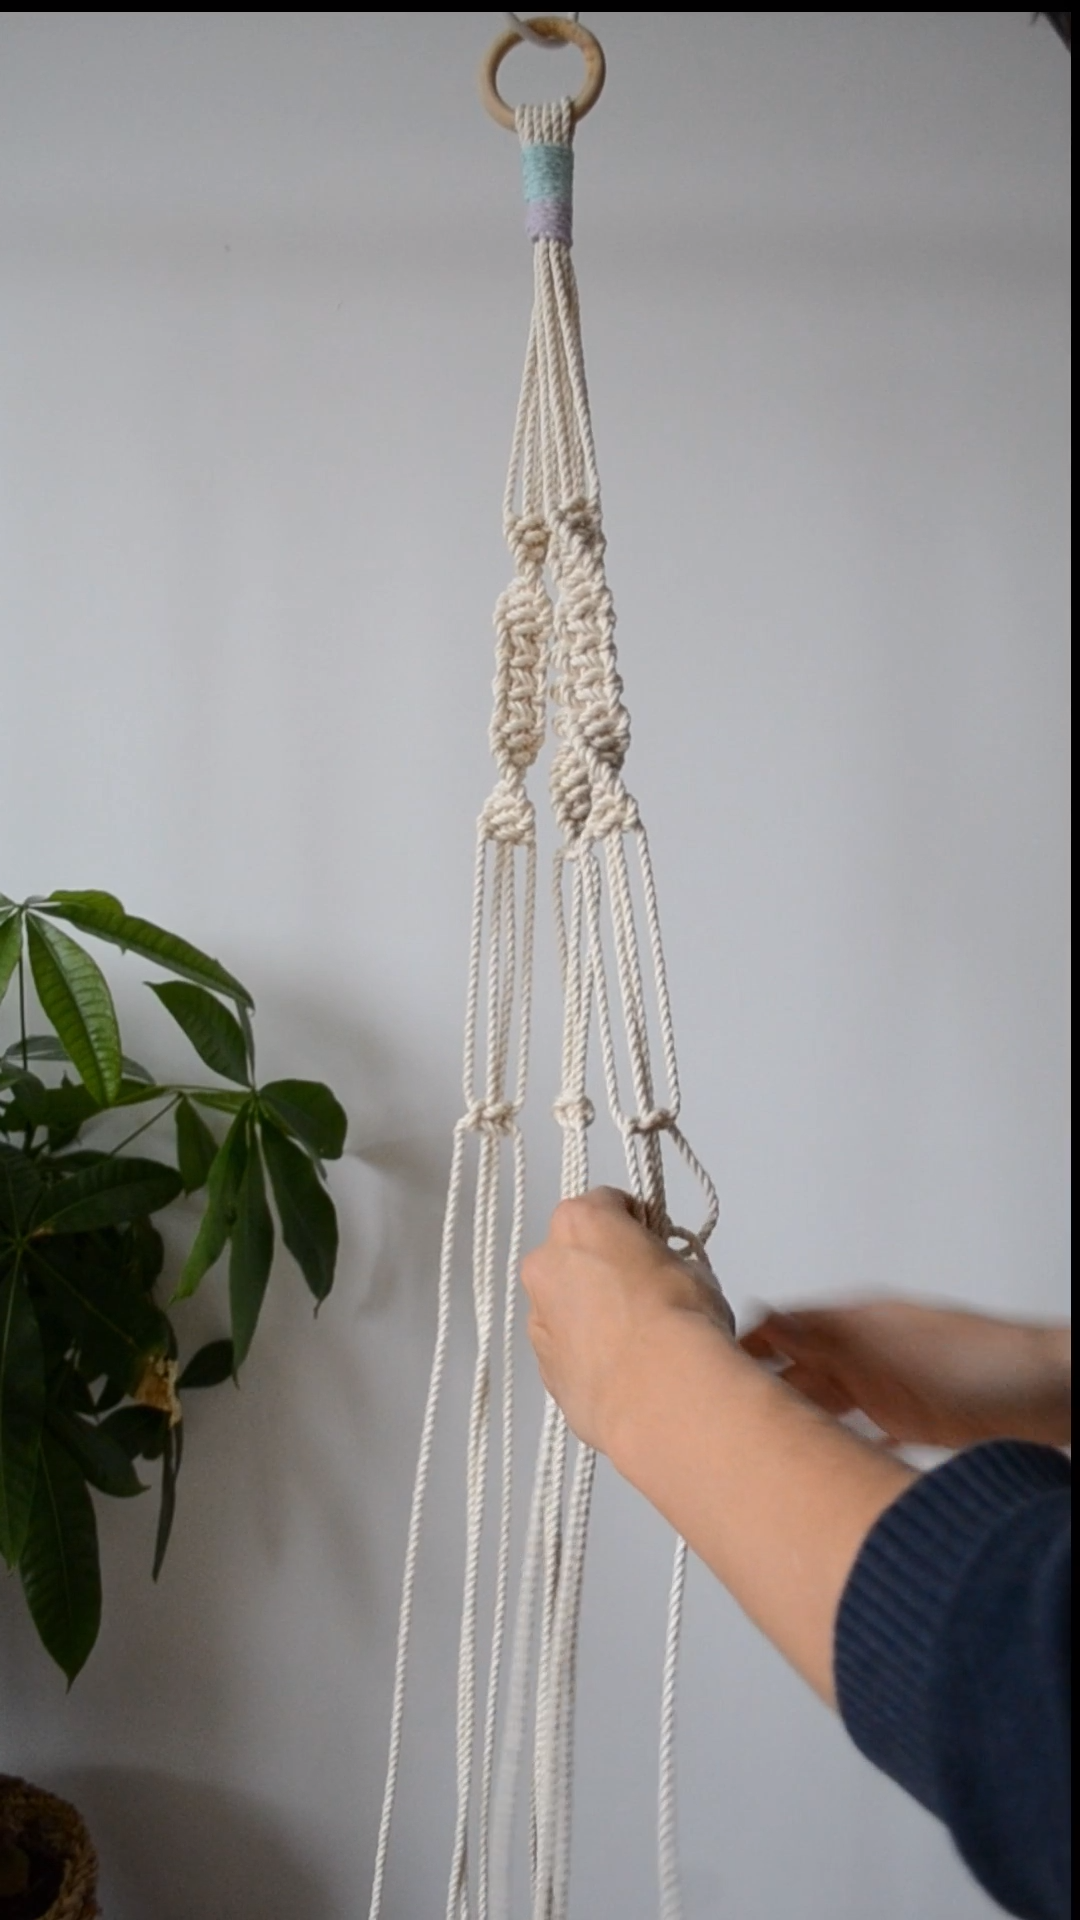 16 plants Hanging crafts ideas